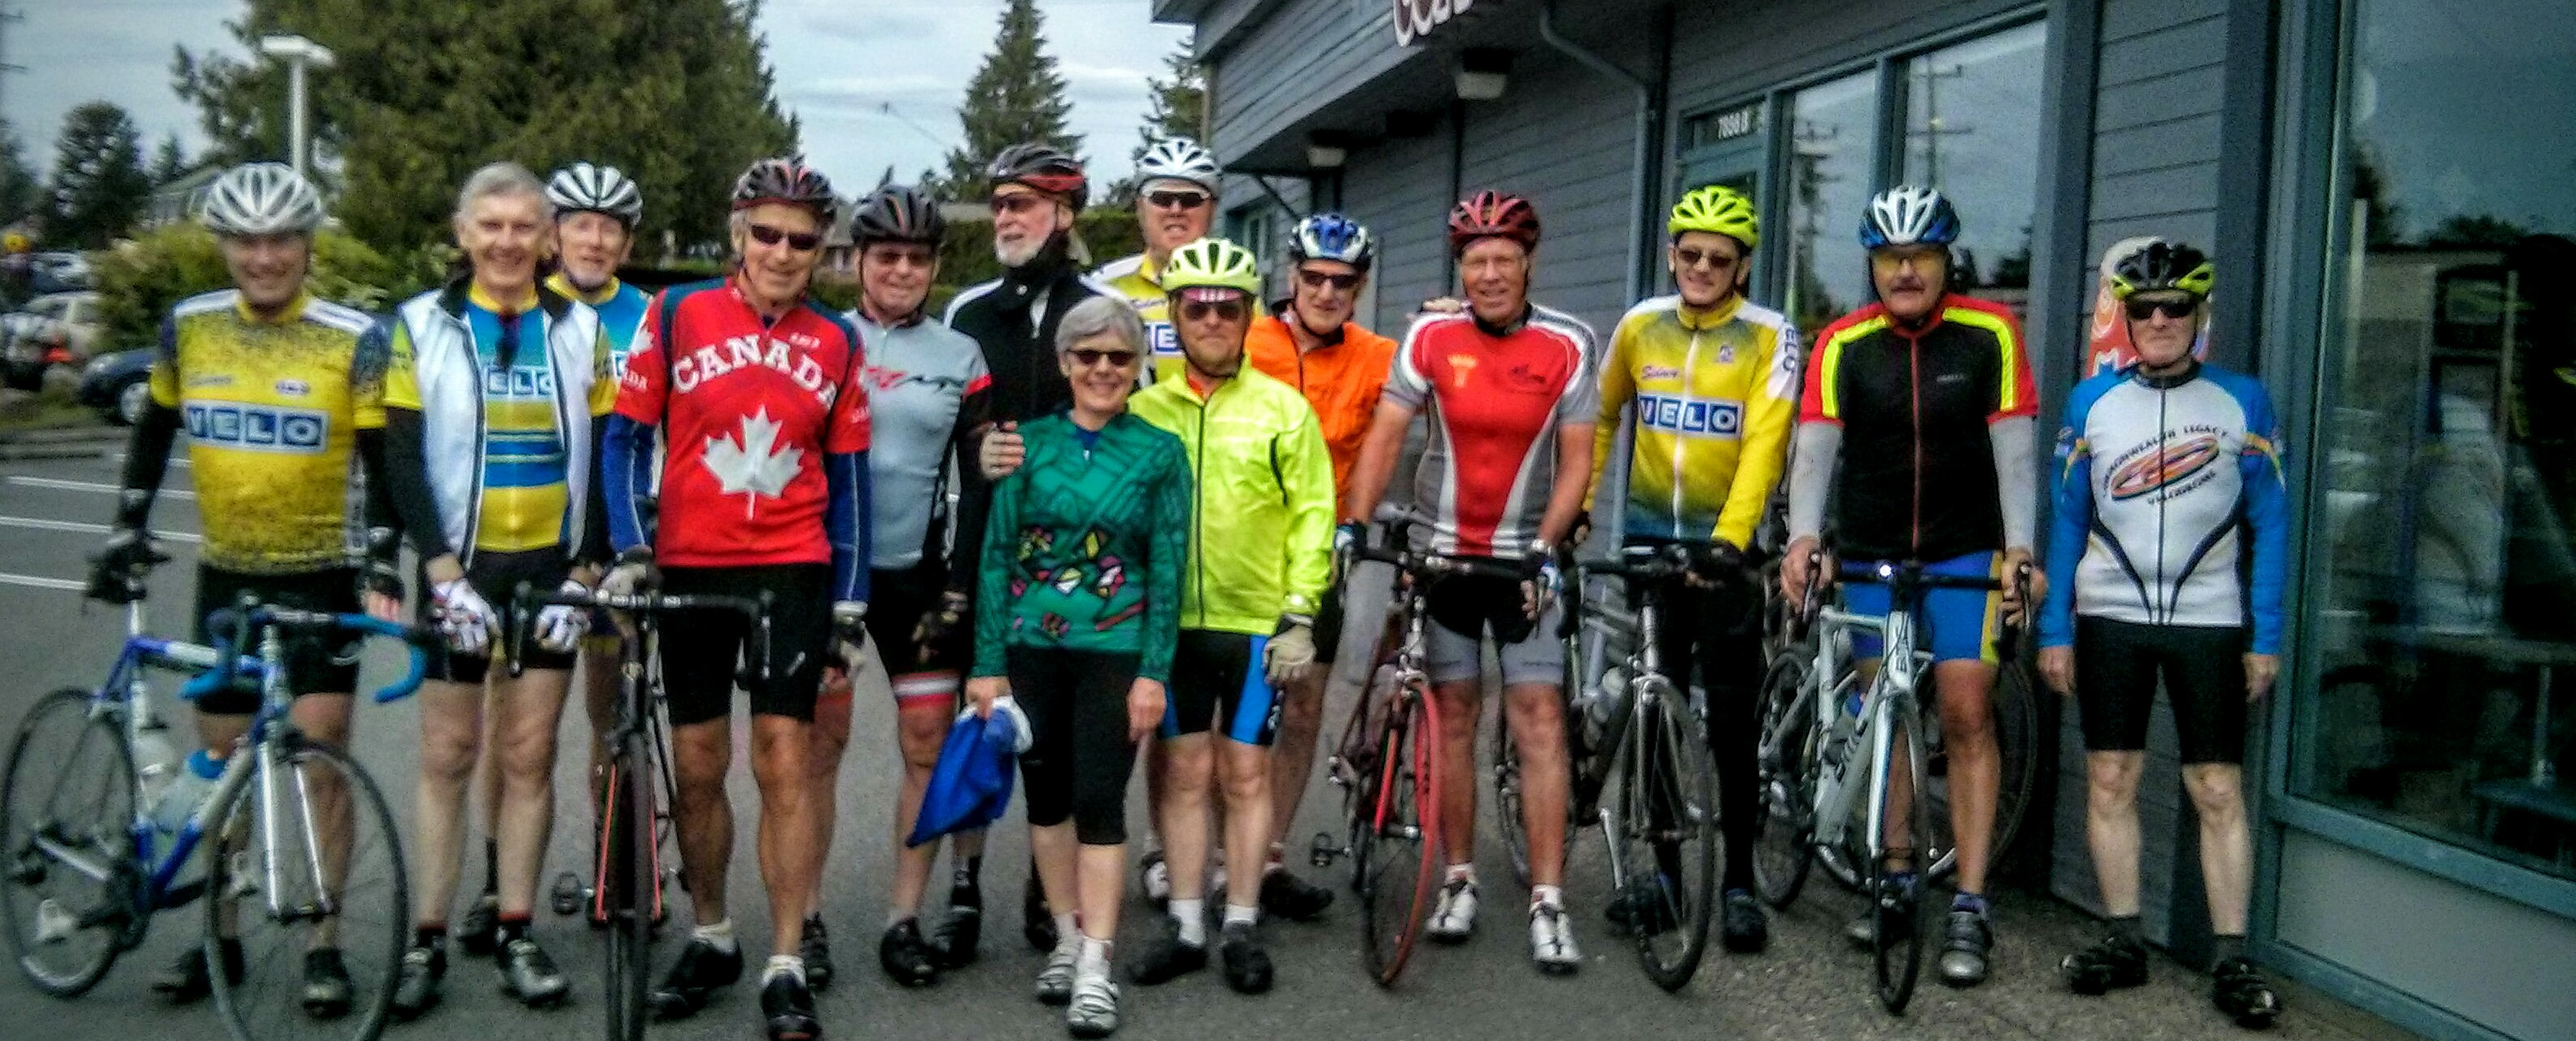 Saturday Club Ride